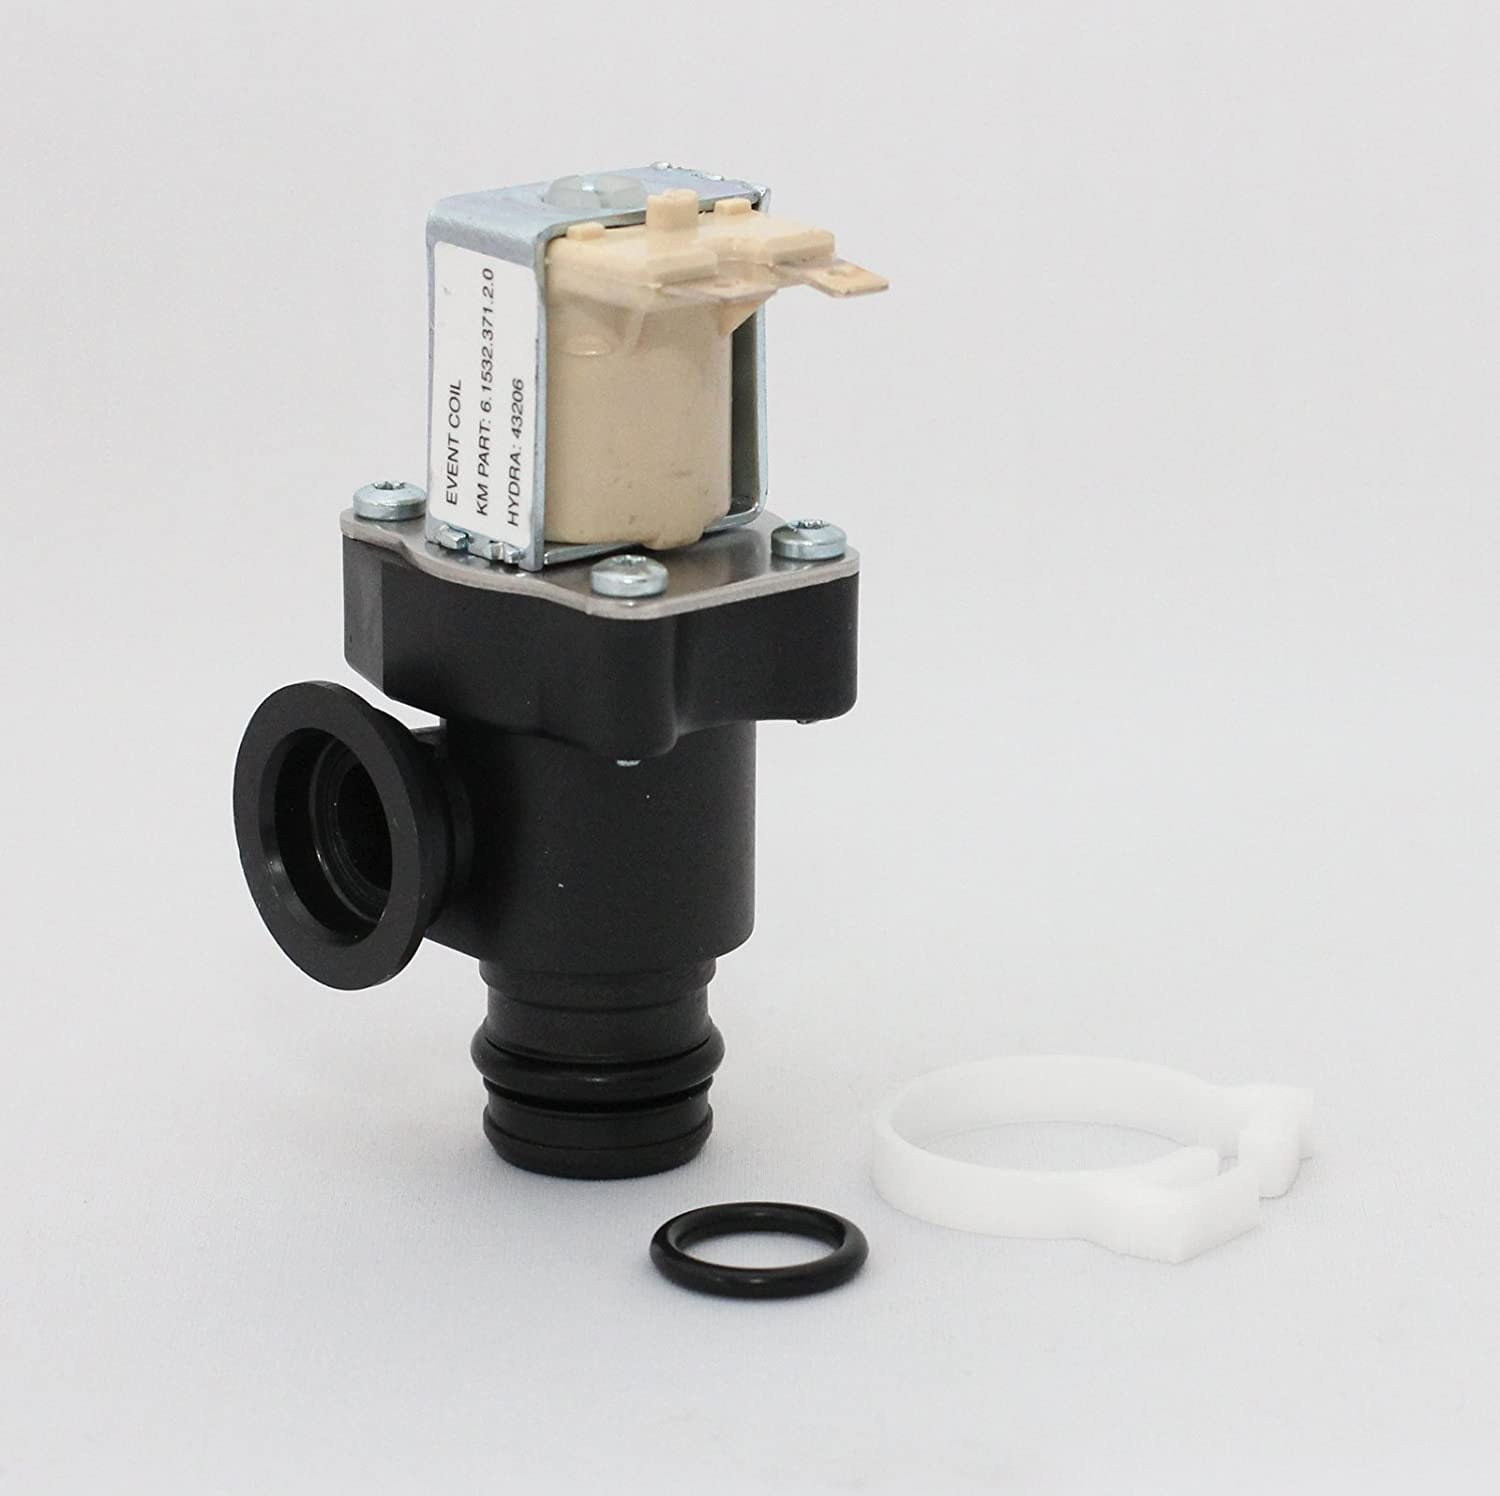 Mira Extreme//Event XS solenoid valve assembly 453.13